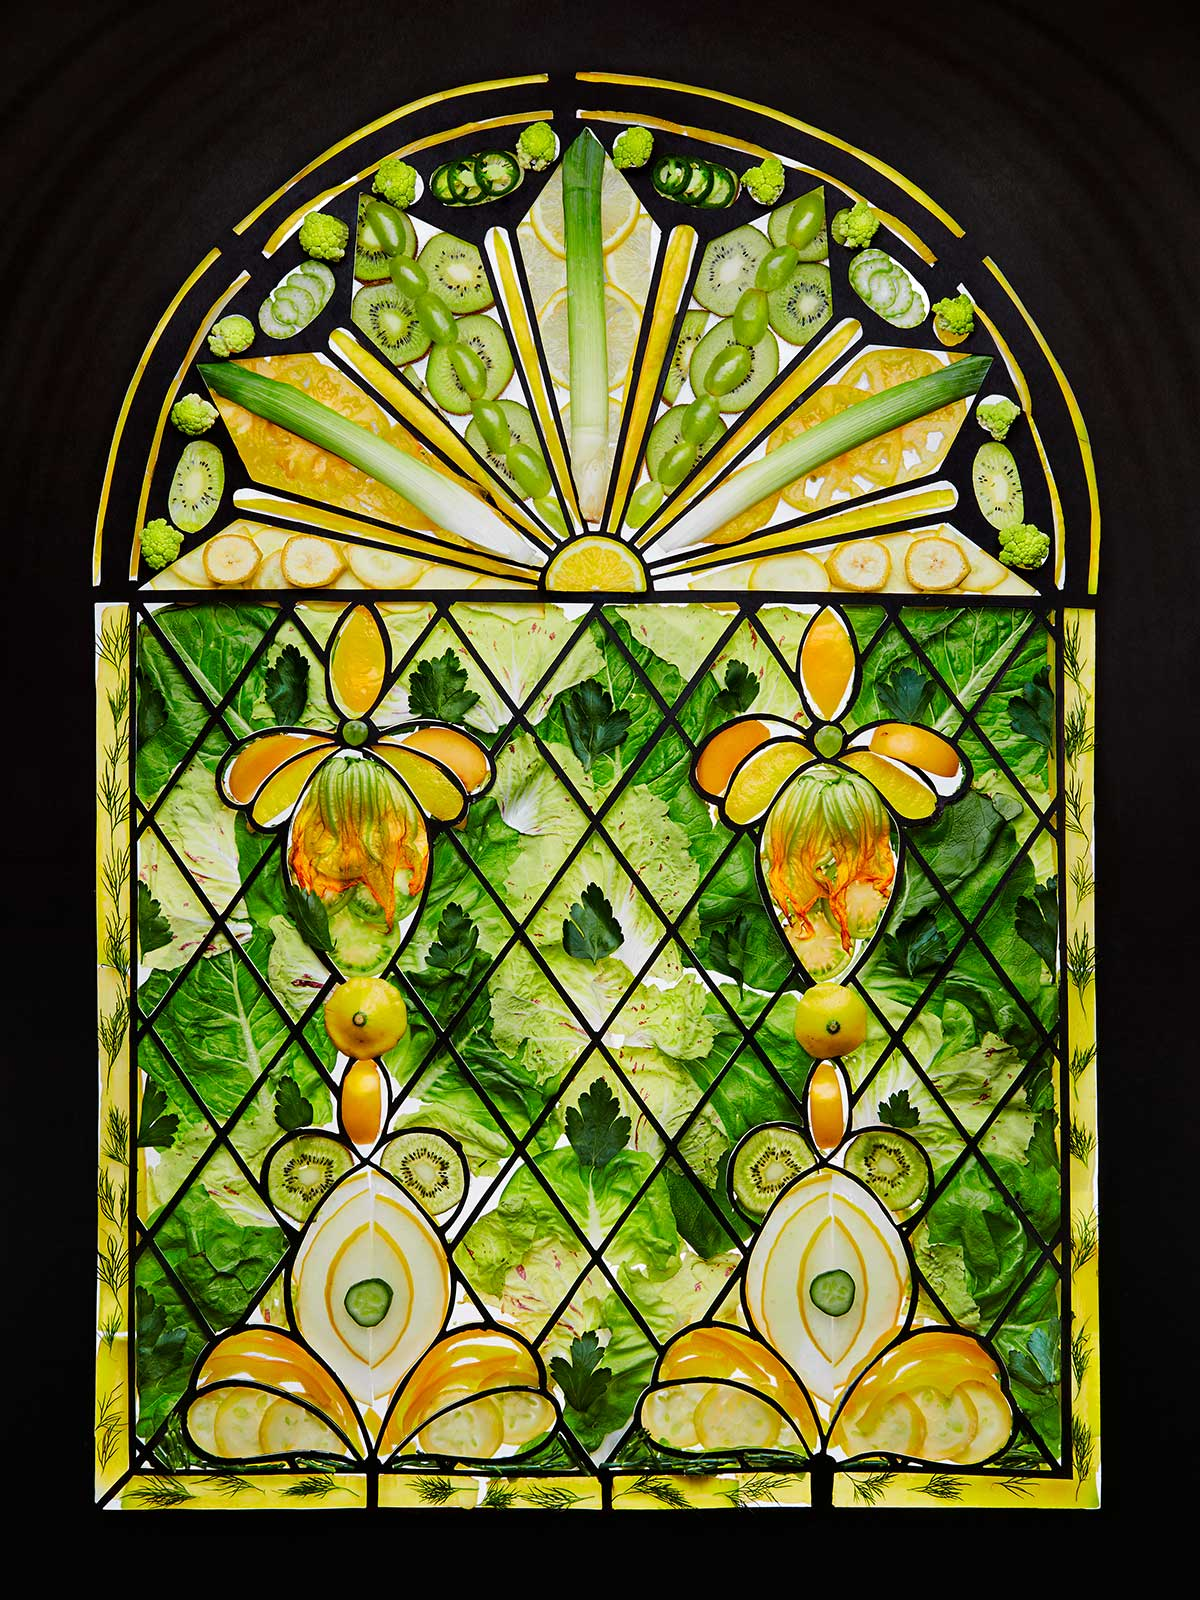 Stained-Glass_GreenYellow.jpg